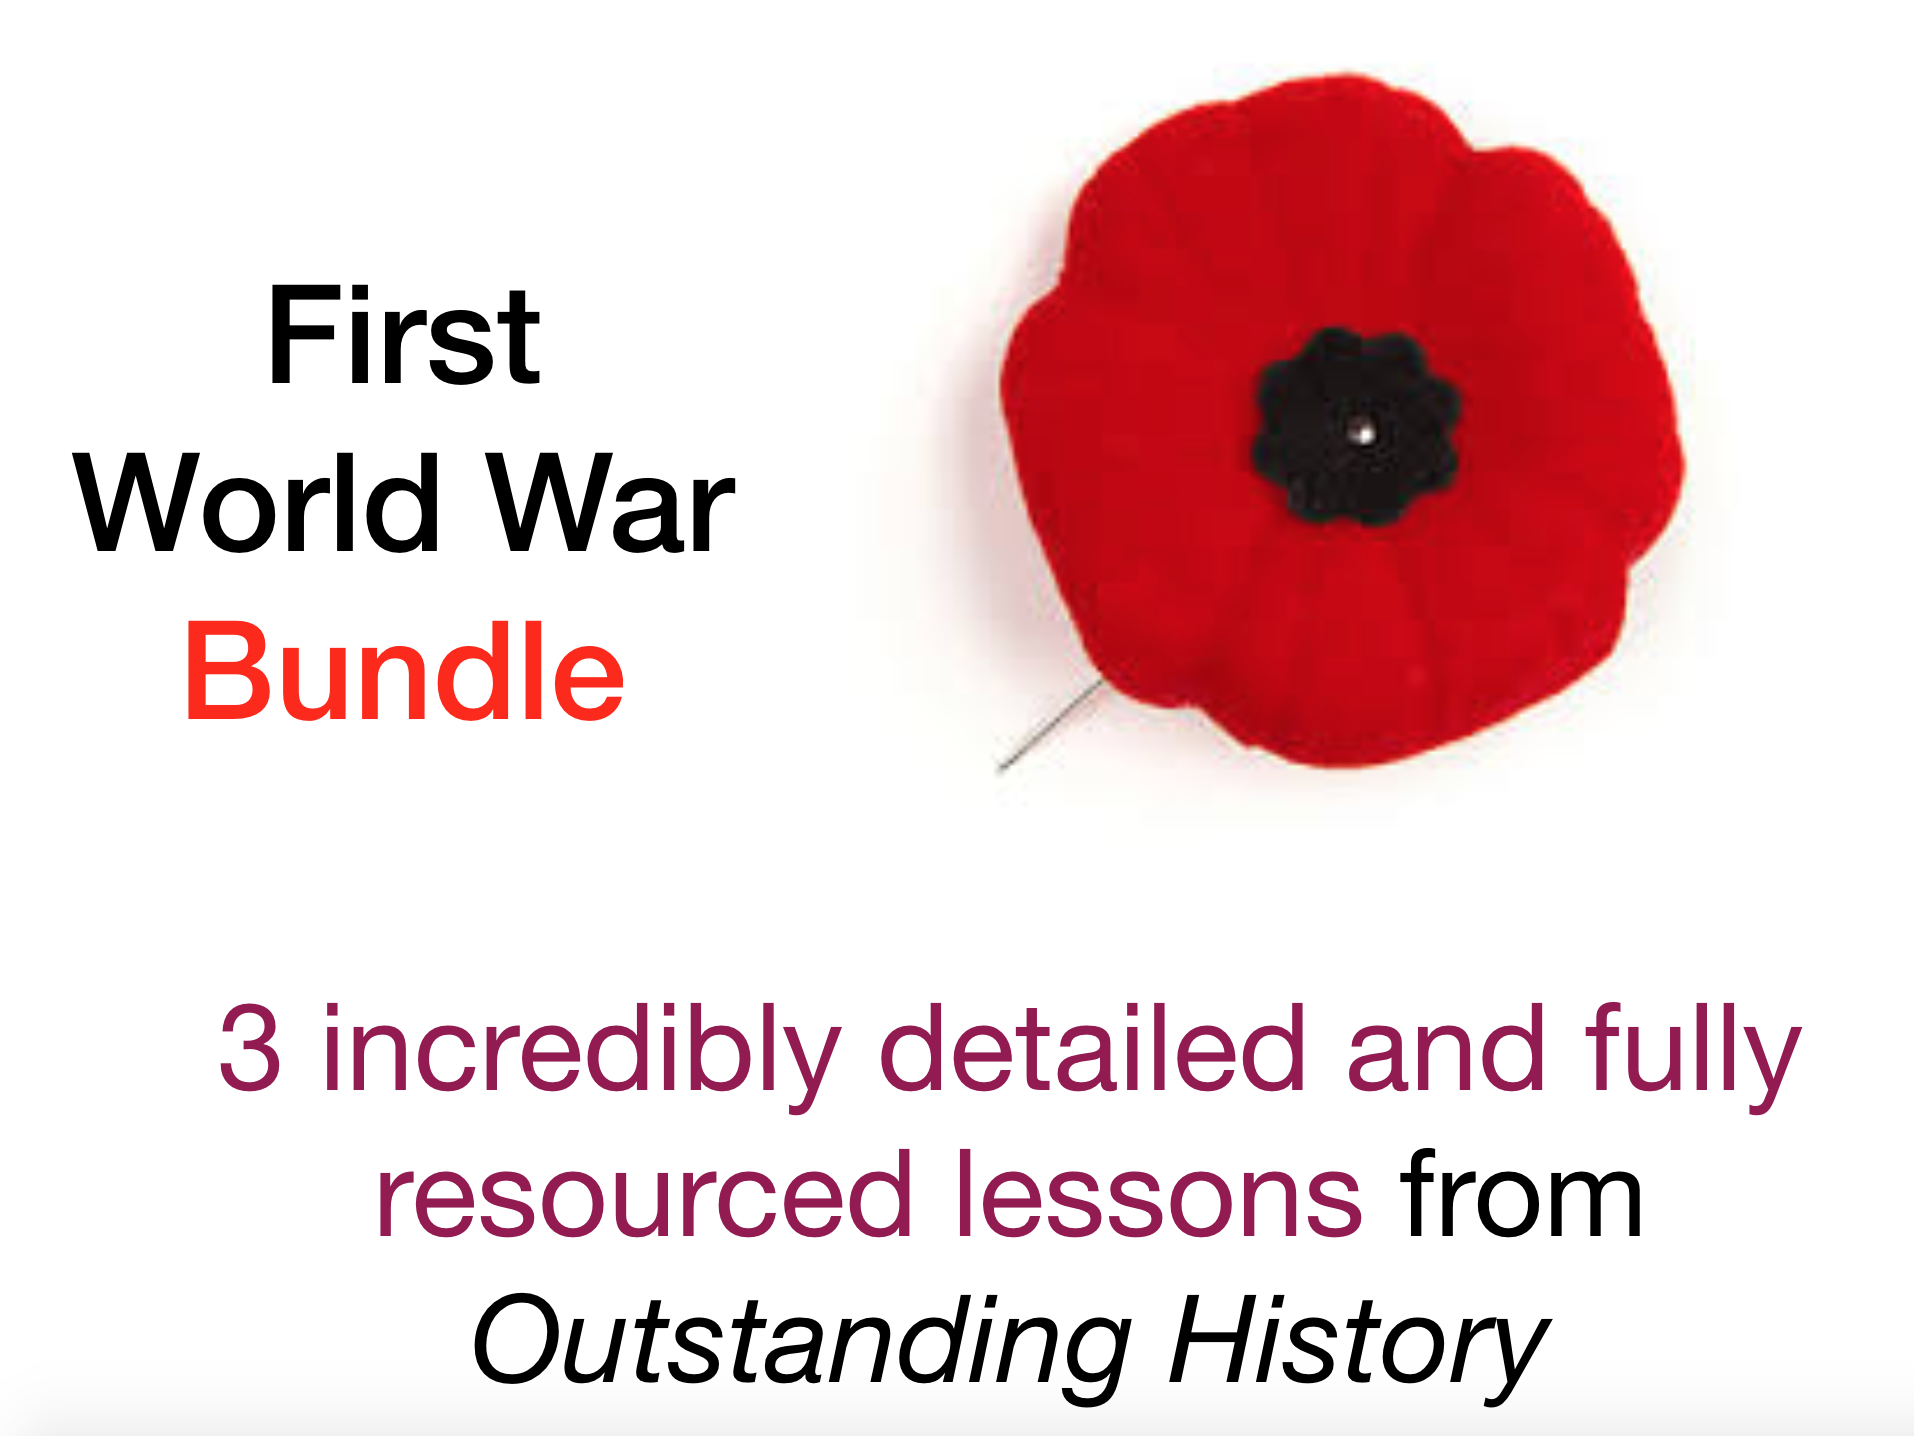 First World War Bundle - Outstanding Fully Resourced Lessons